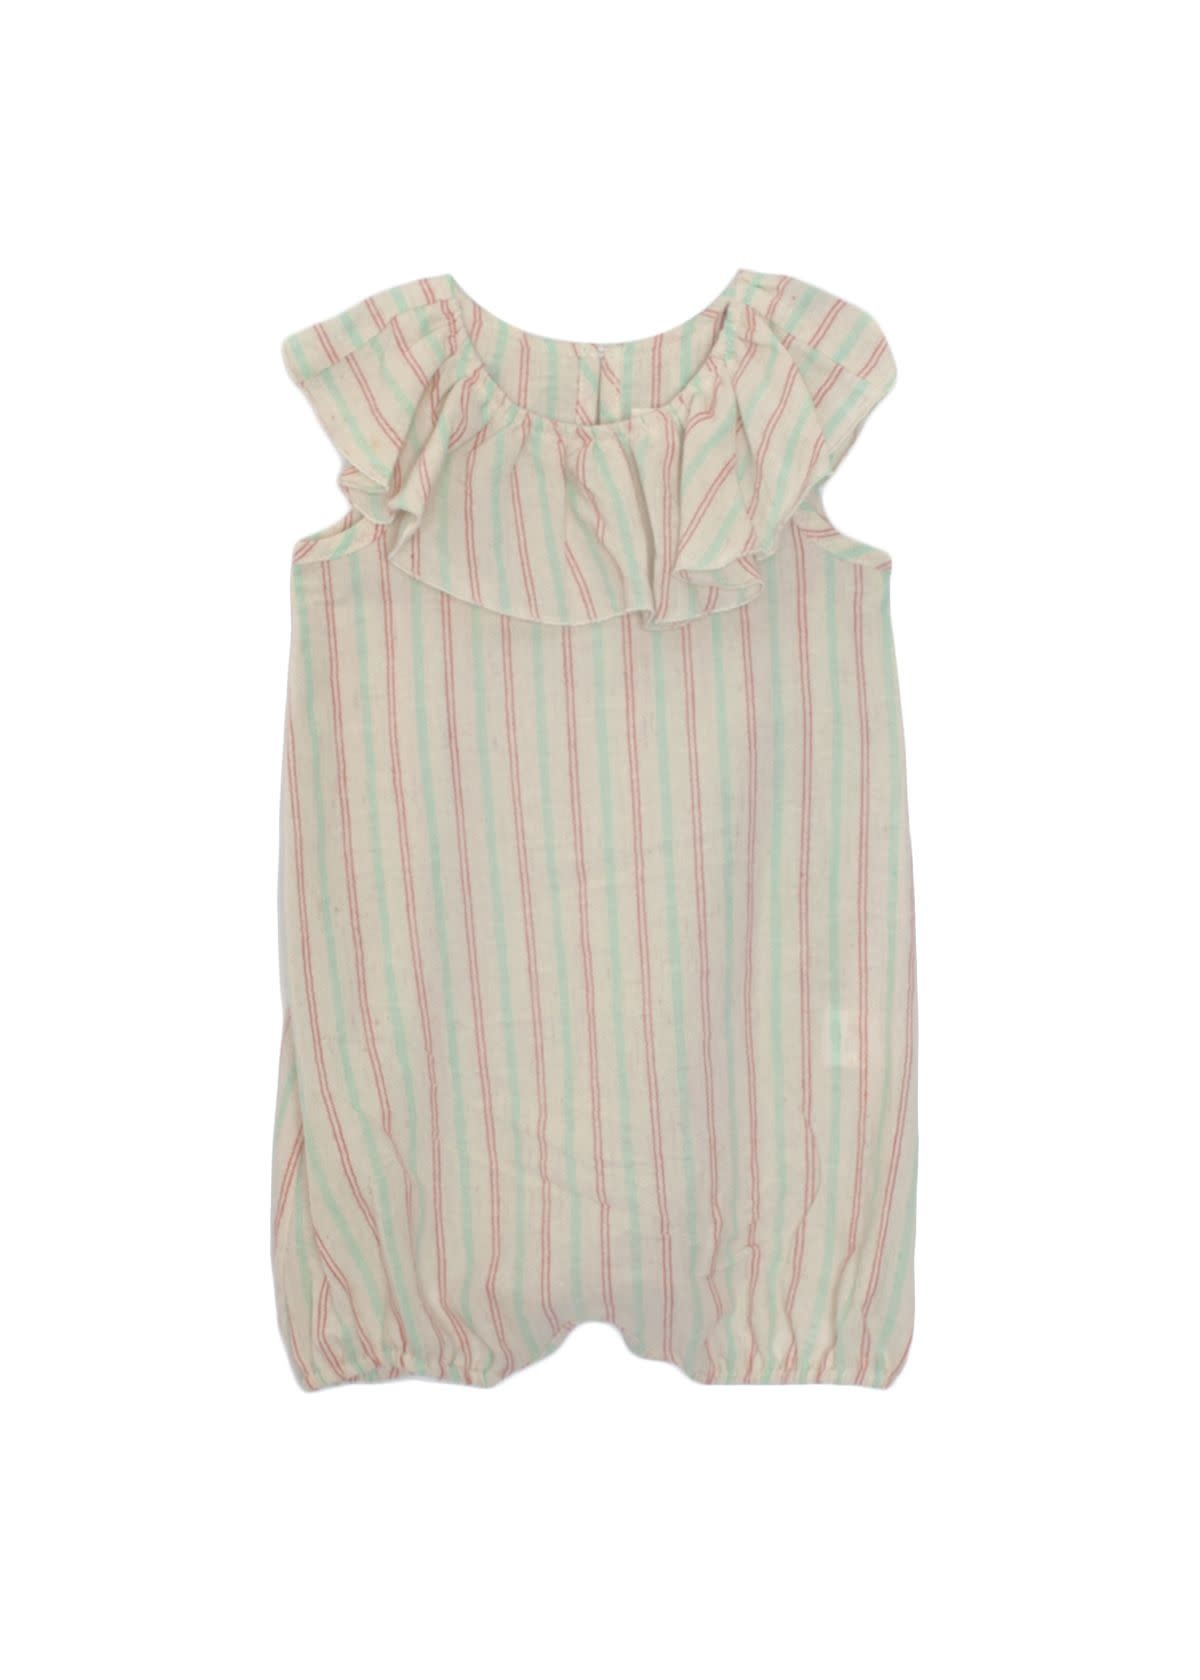 Mabel and Honey Woven Striped Romper